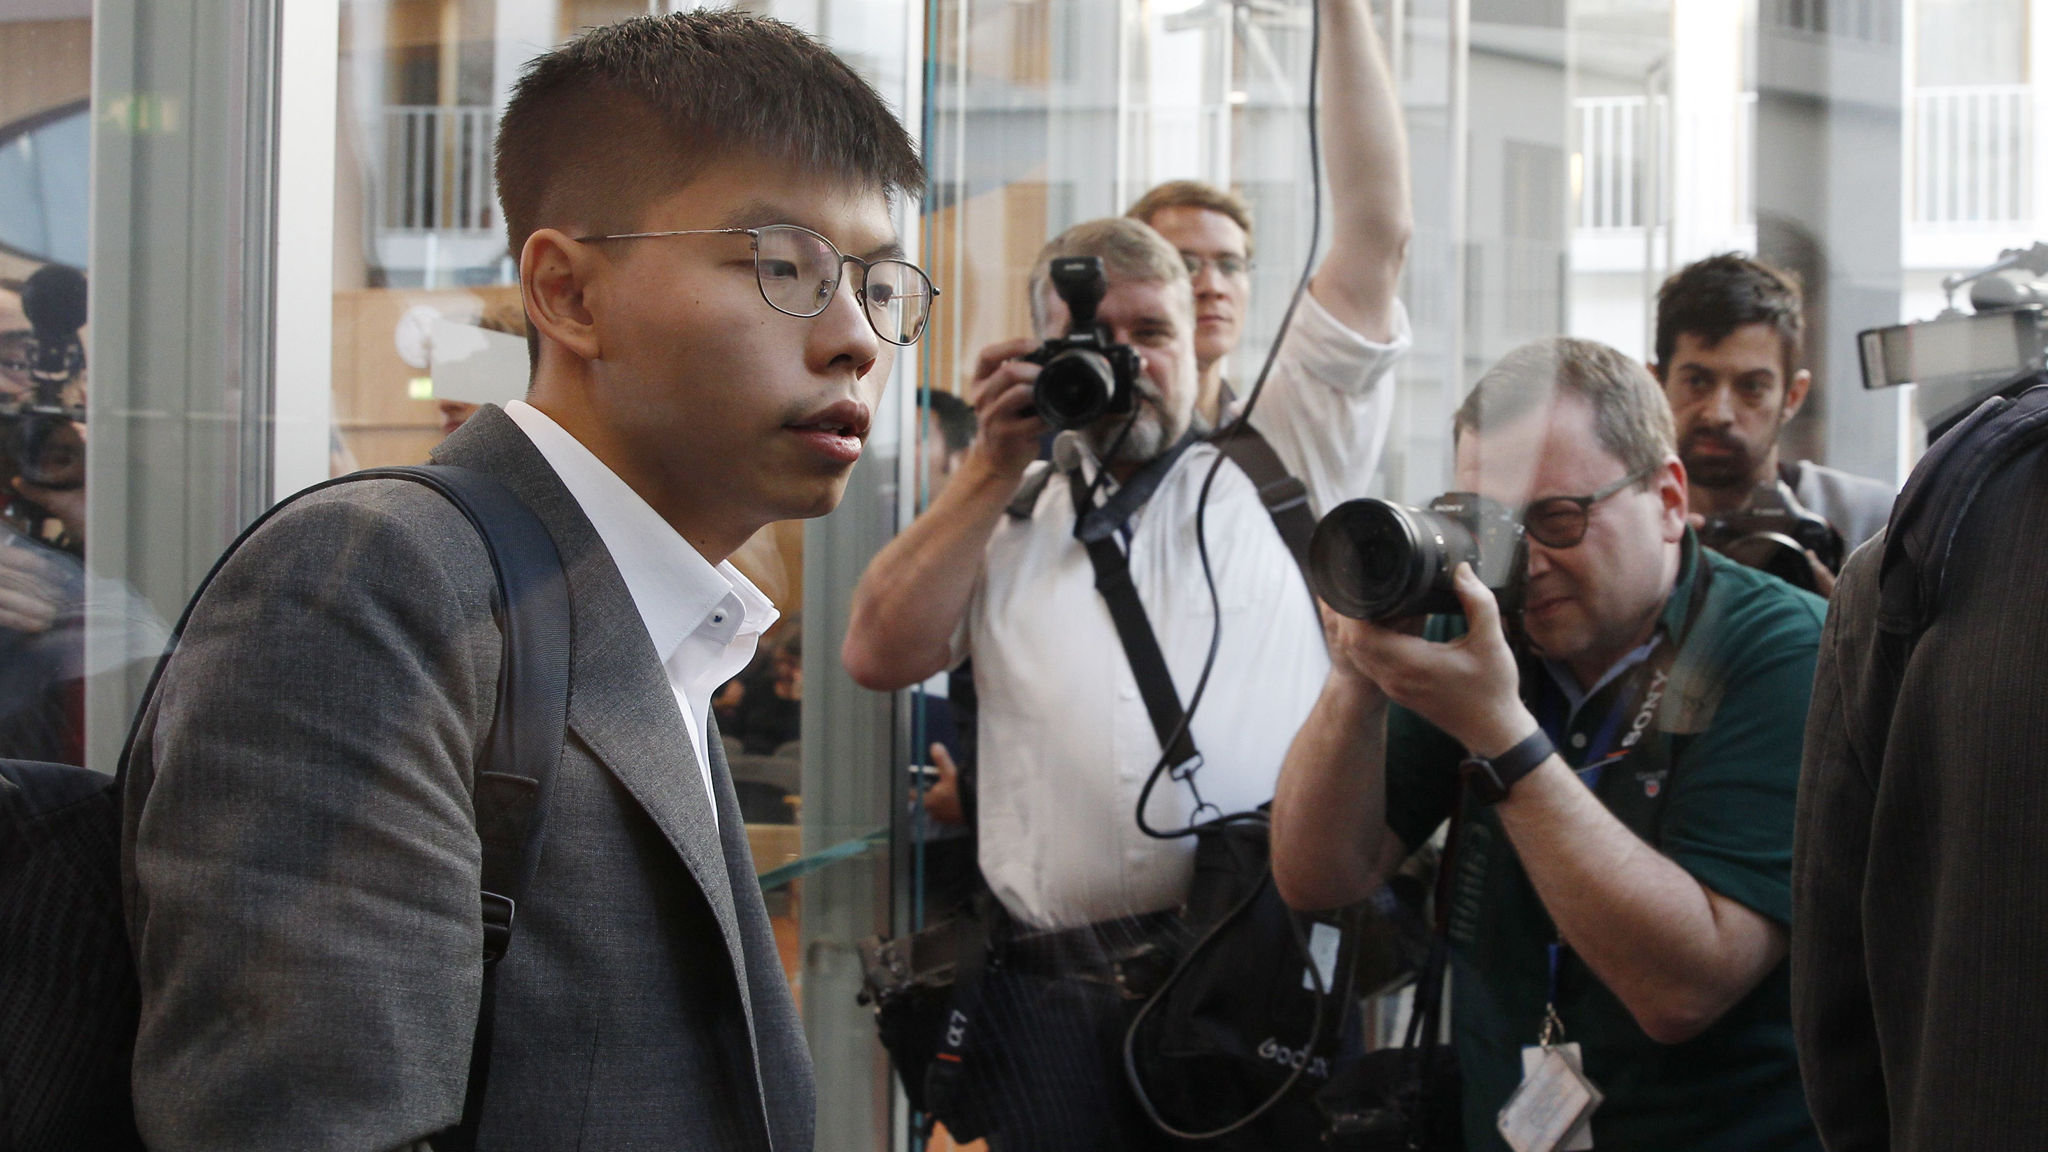 Hong Kong activist calls for more support from Europe